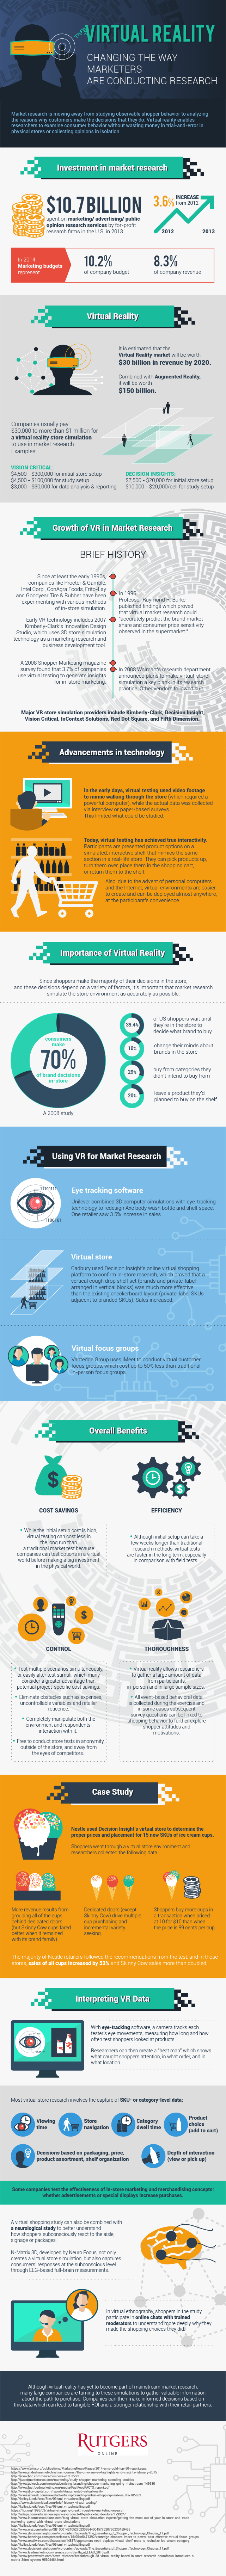 Virtual Reality: Changing the Way Marketers are Conducting Research #Infographic